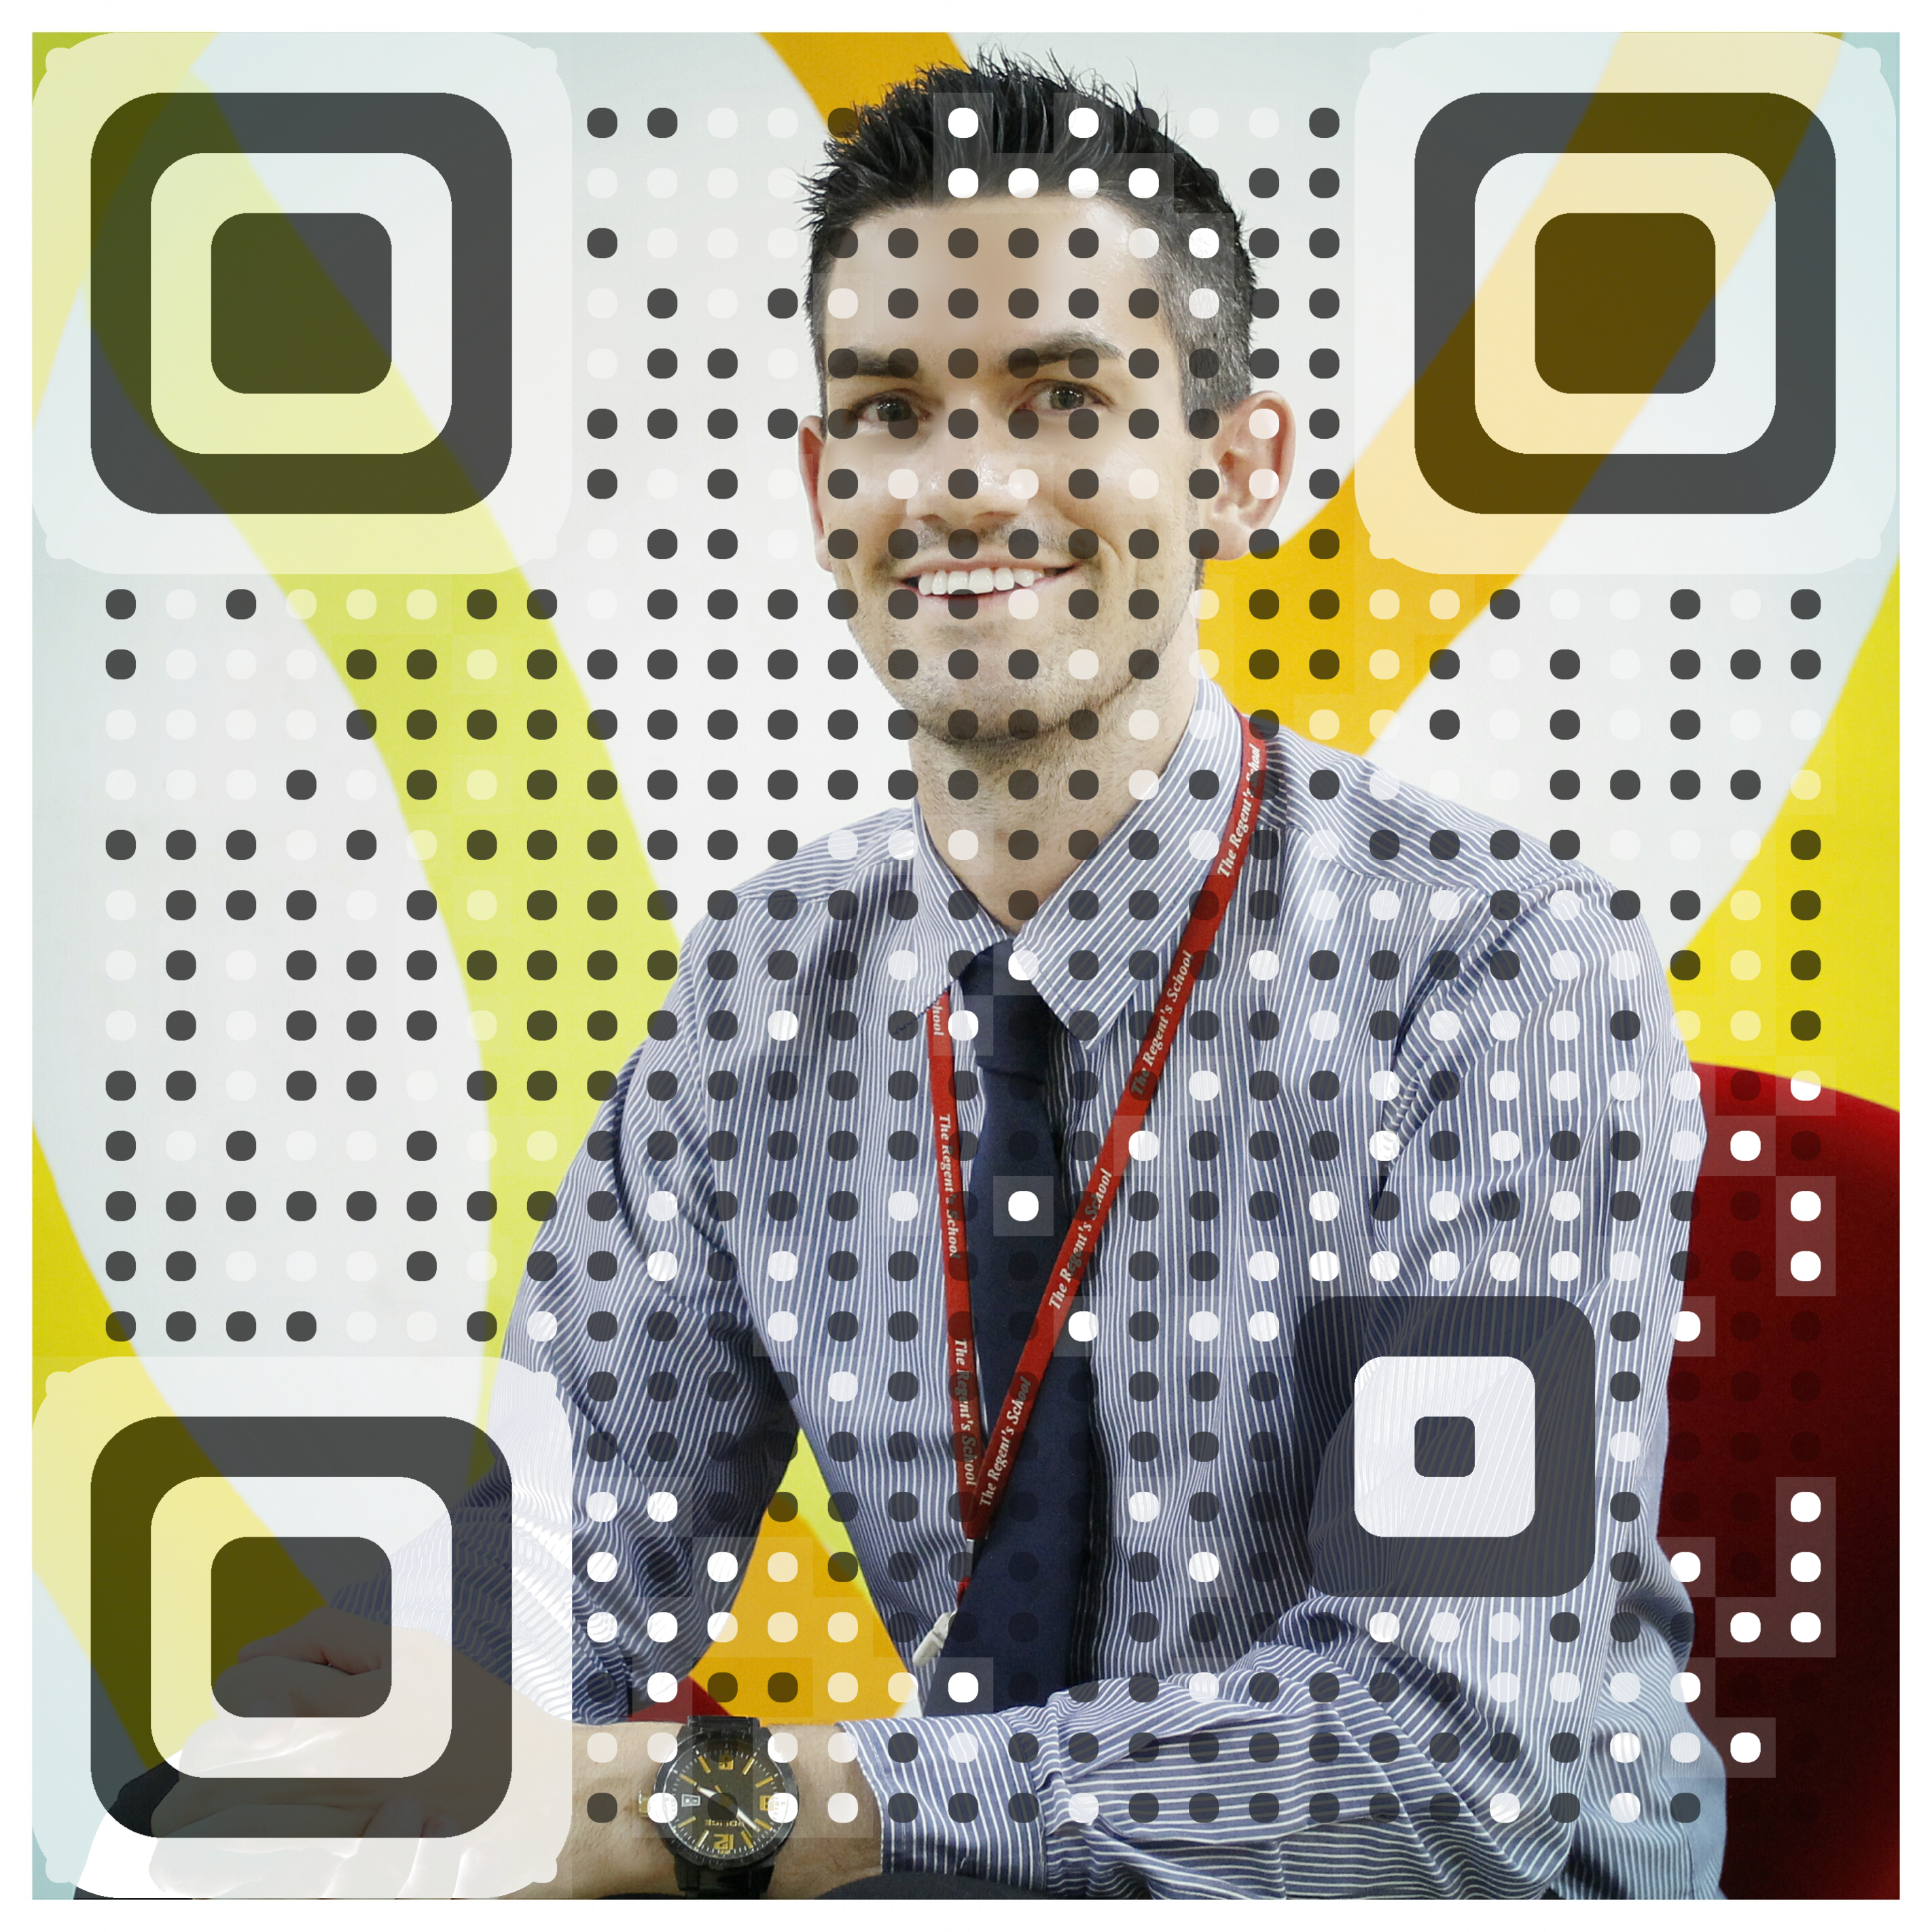 How To Use QR Codes In Lessons. - EDTECH 4 BEGINNERS